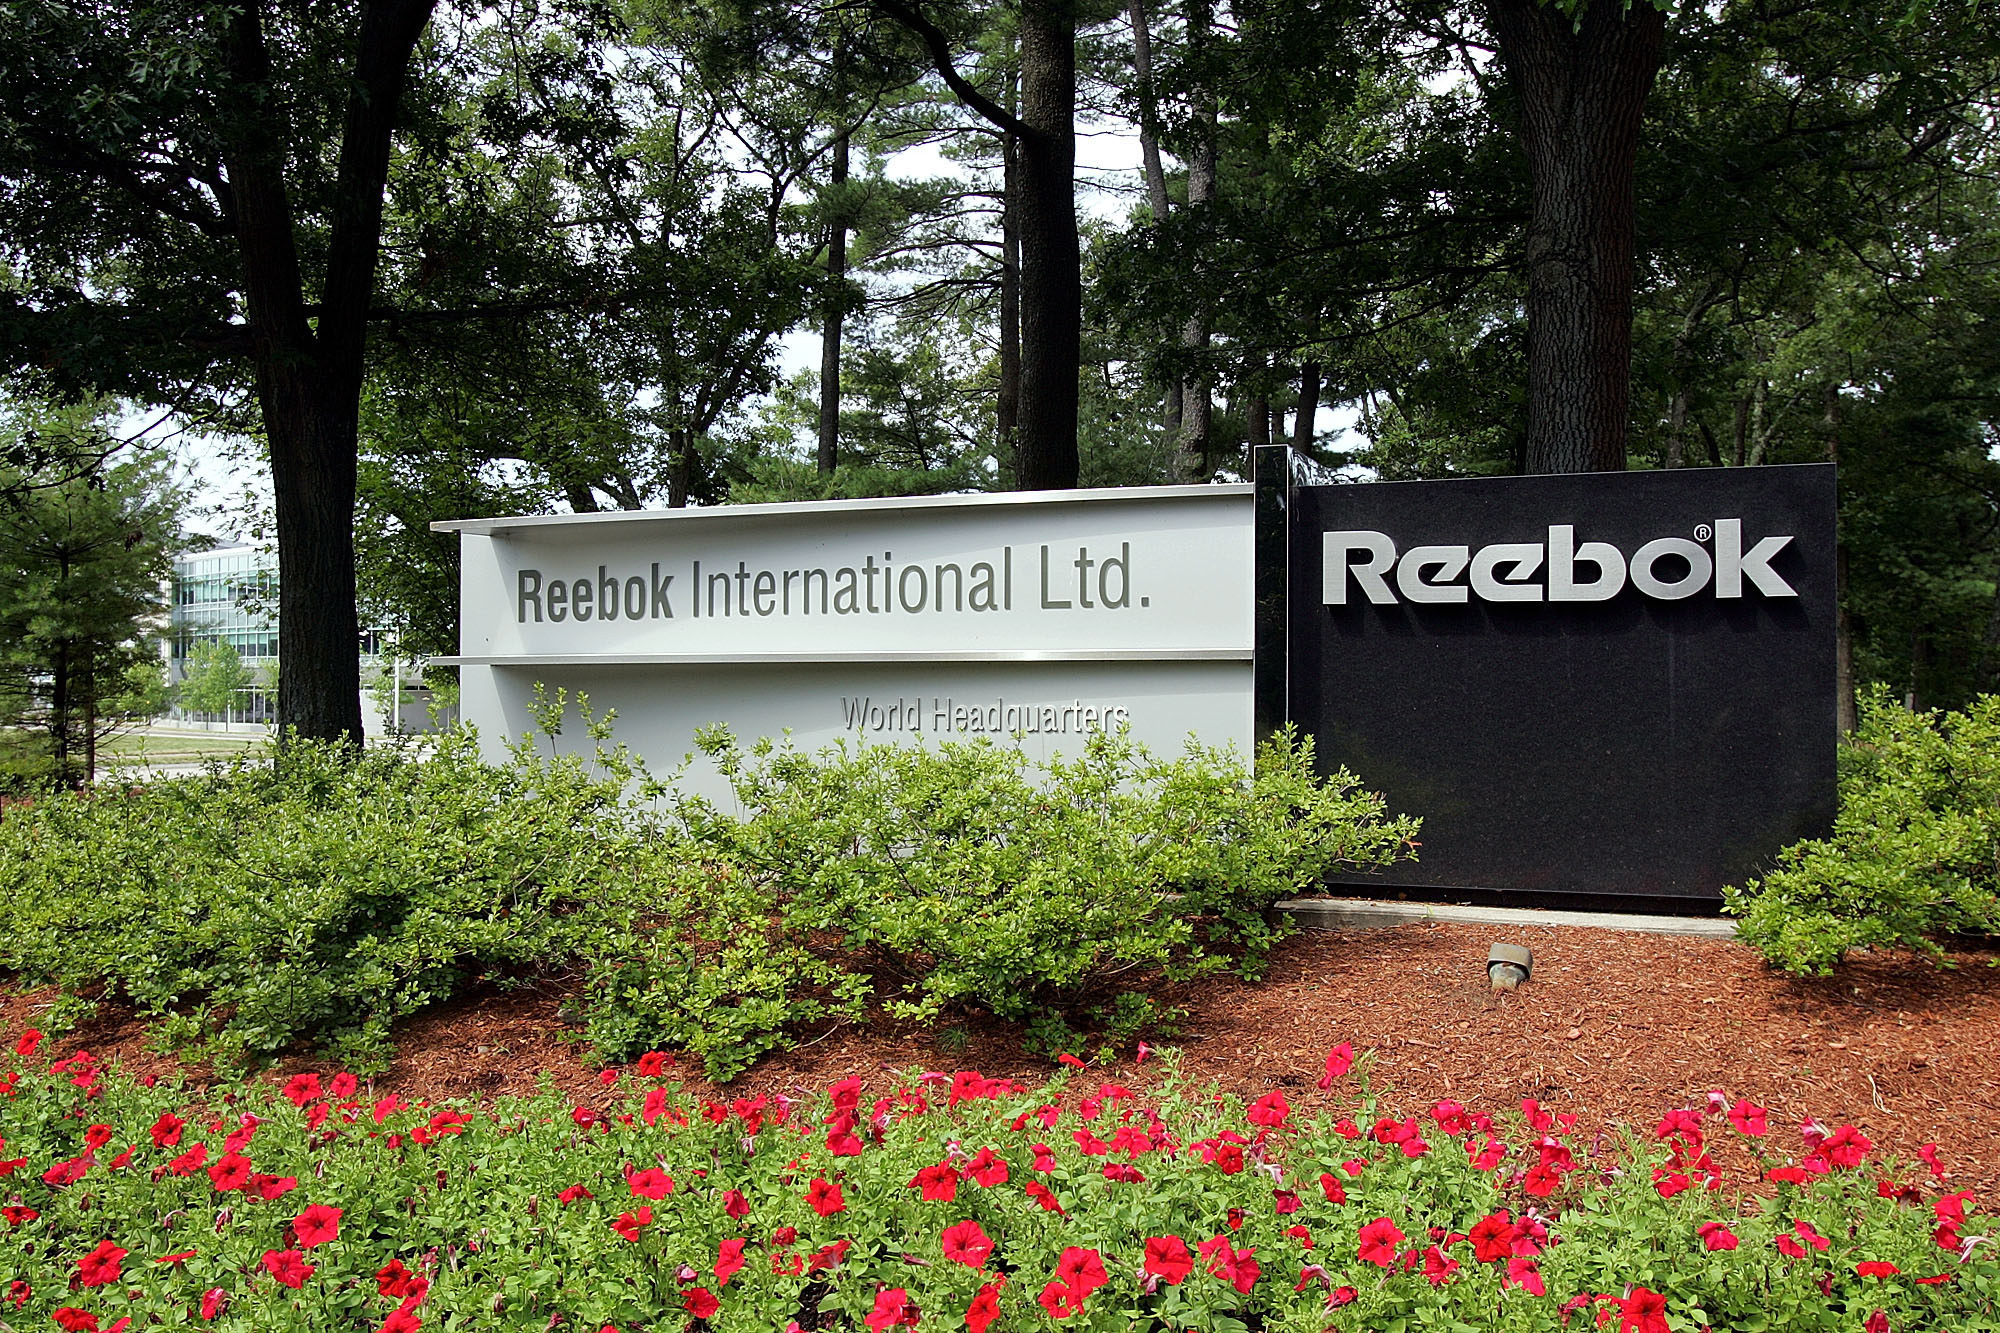 Five things to know about Reebok's future - The Boston Globe